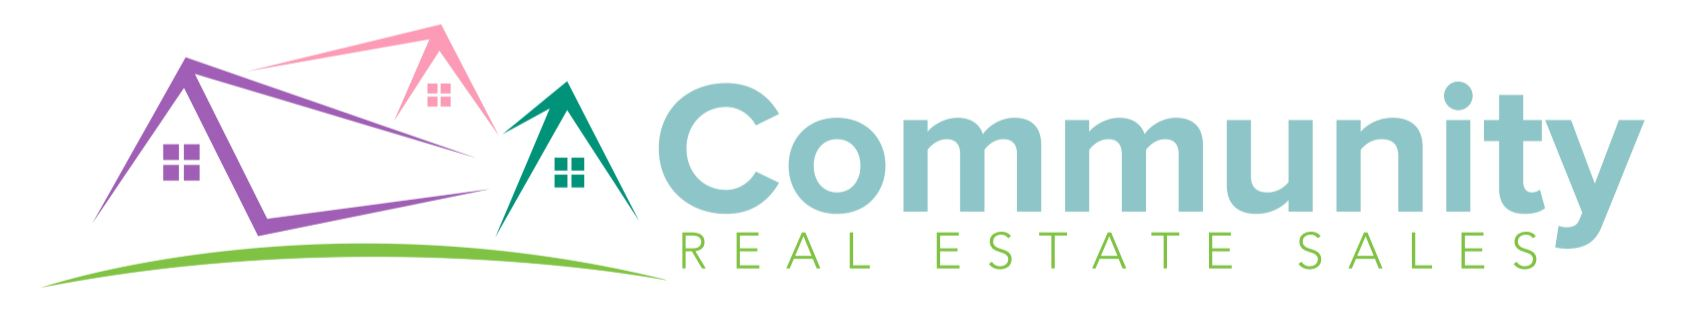 Community Real Estate Sales